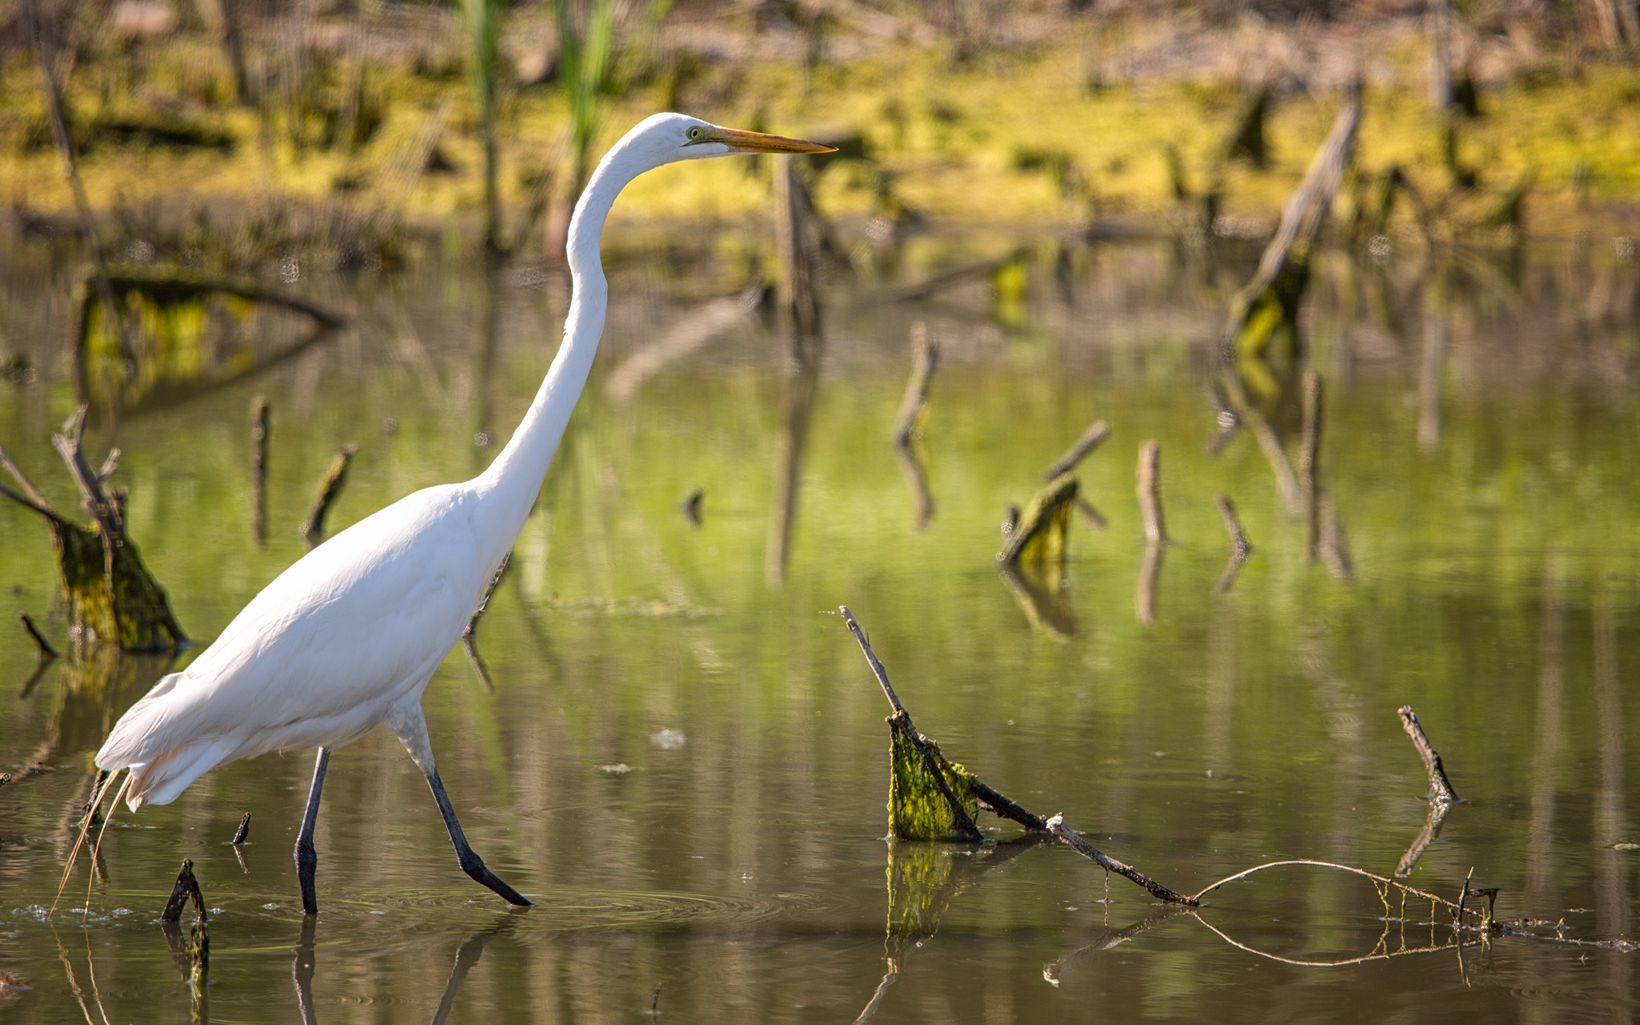 Great white heron, or great egret, wading in standing water with sticks and moss.